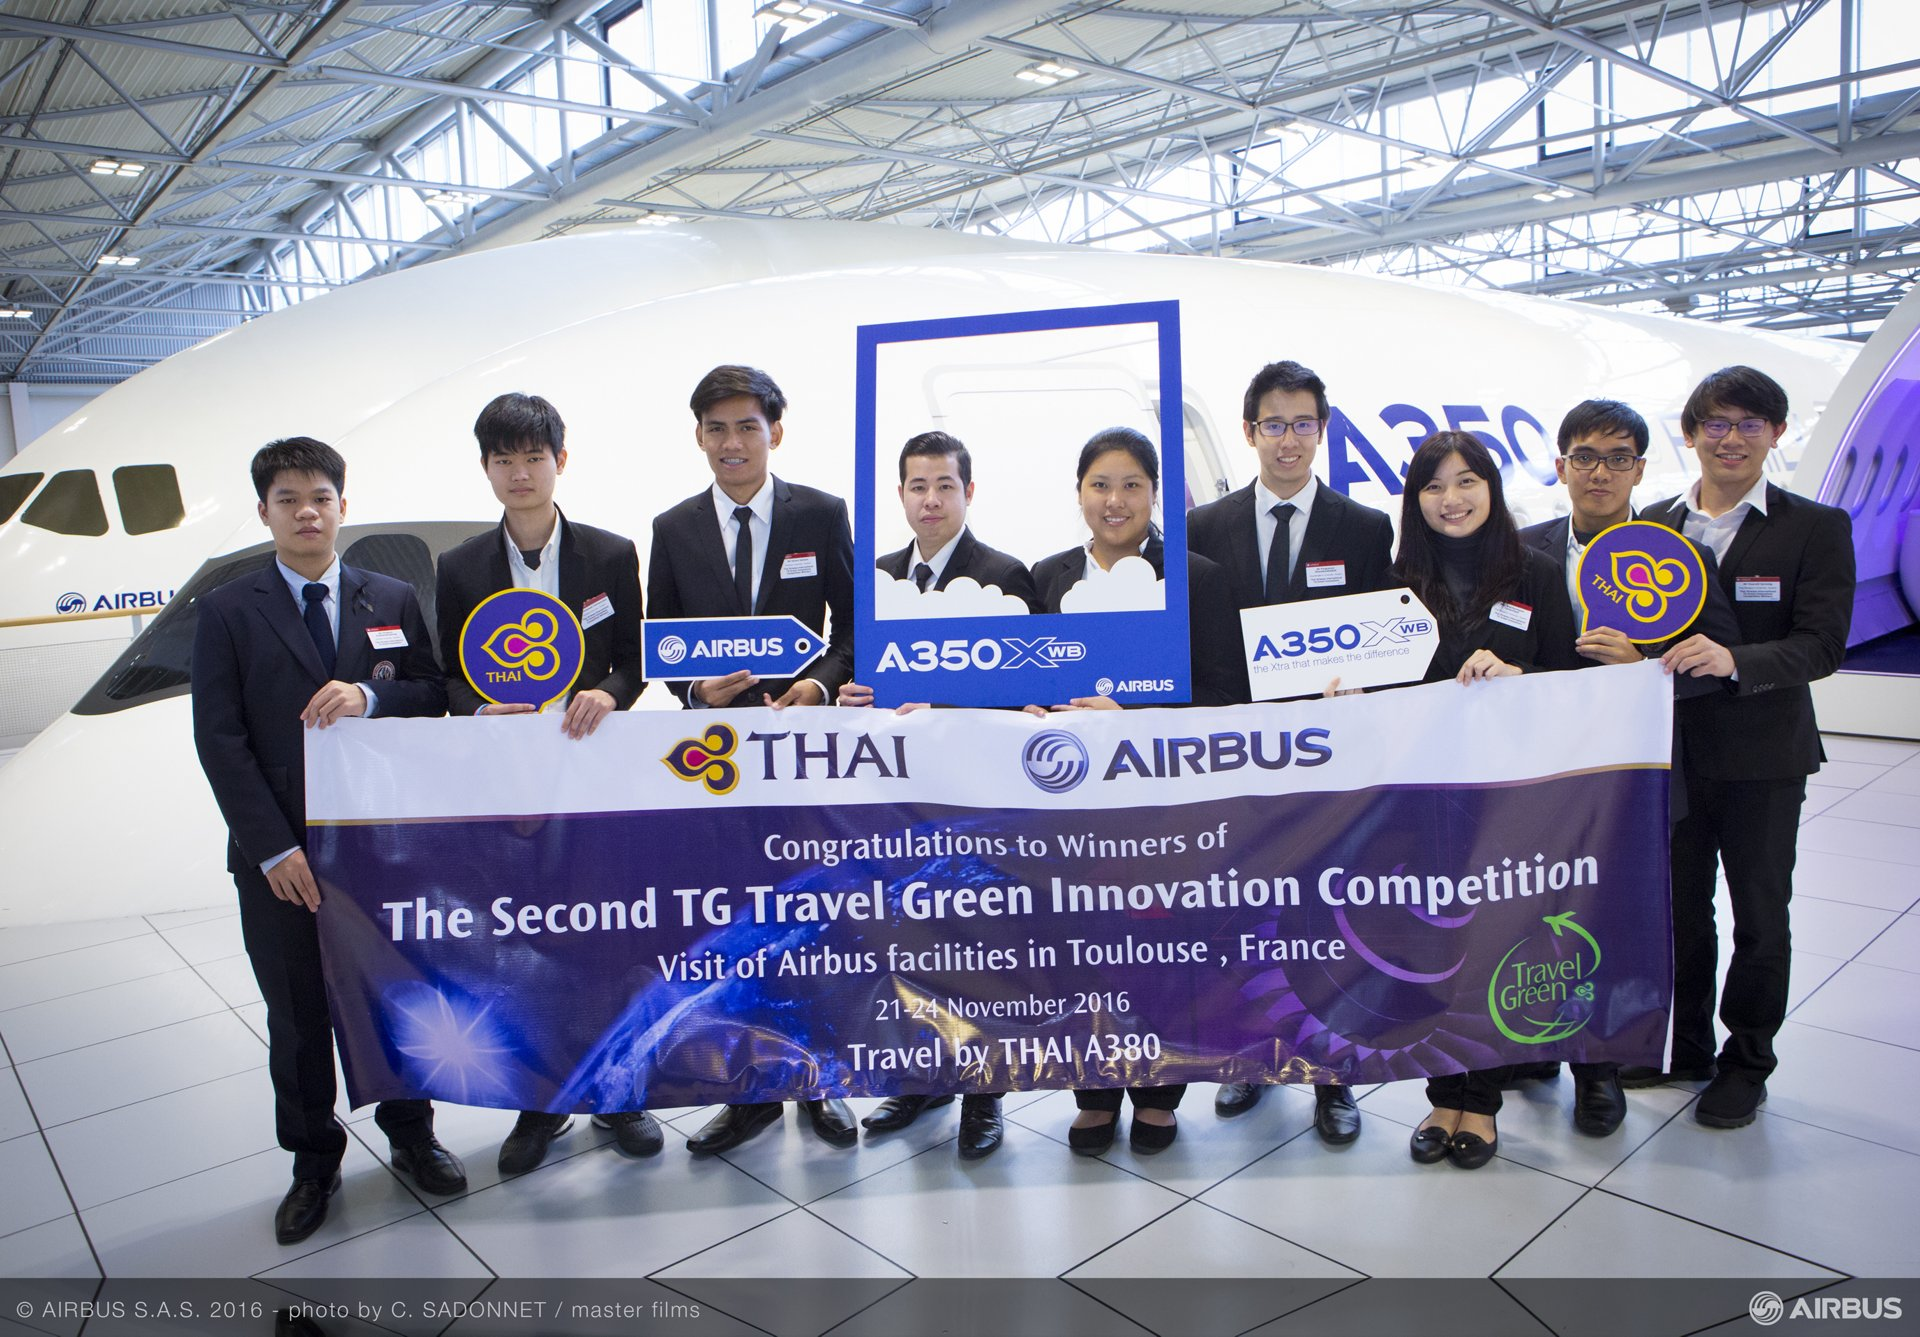 Thailand student innovators at Airbus in Toulouse